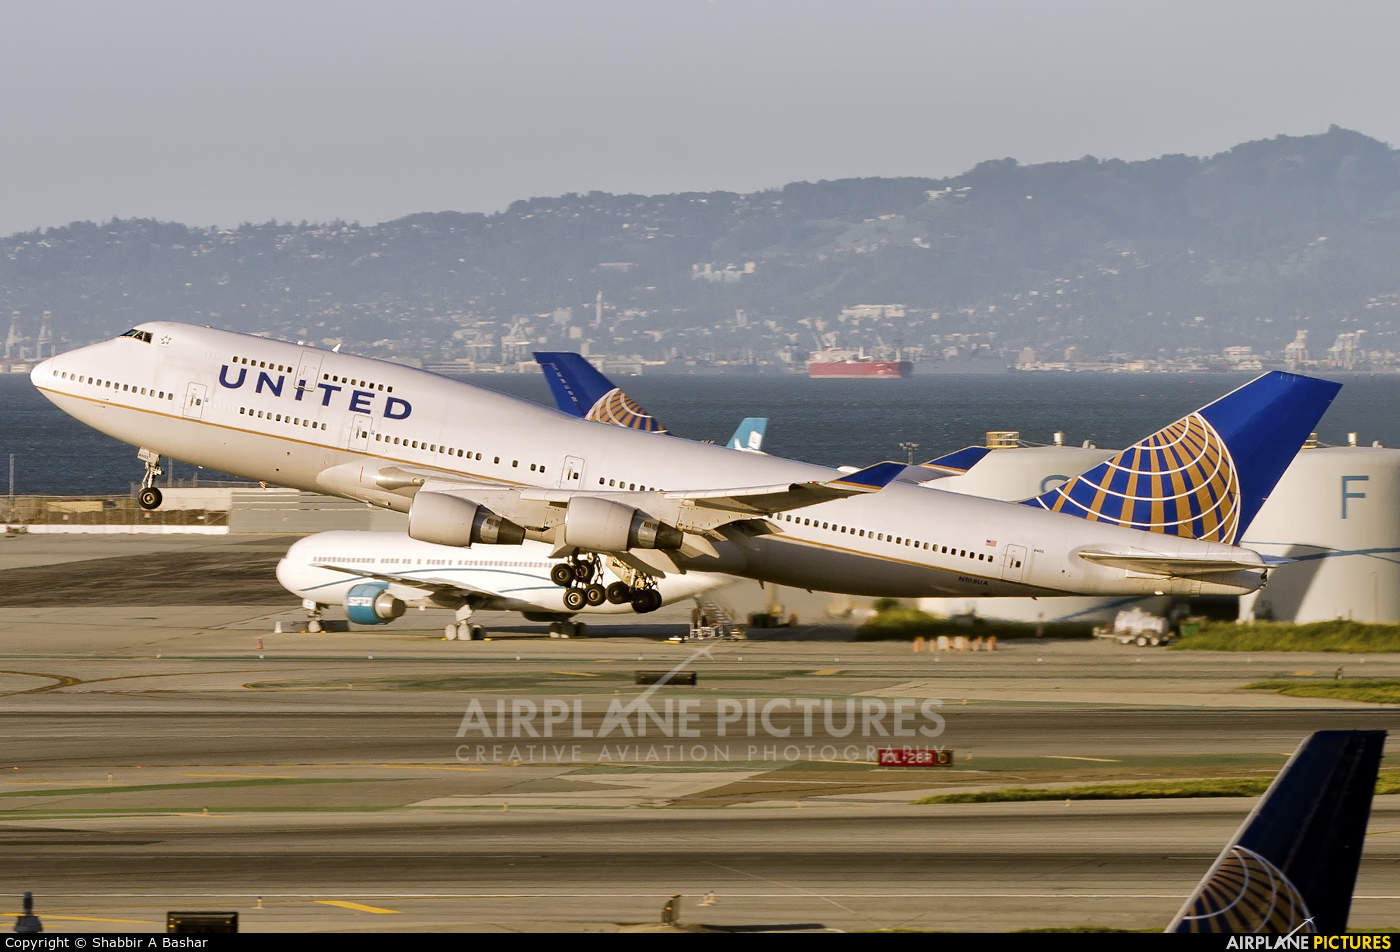 United Airlines pilot arrested for owning bordels